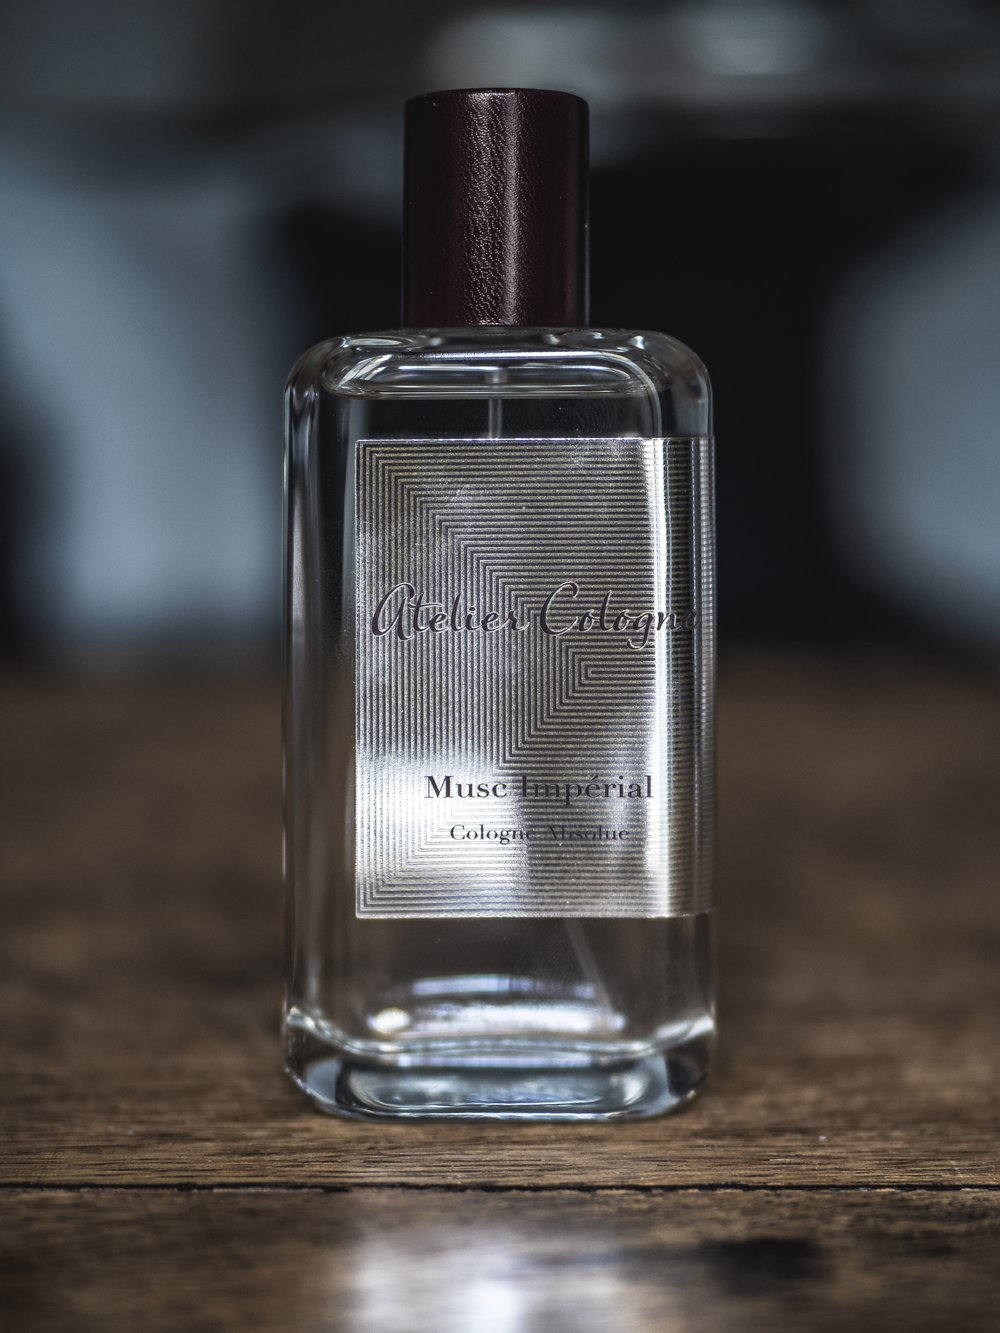 Atelier Cologne Musc Impérial Fragrance Review